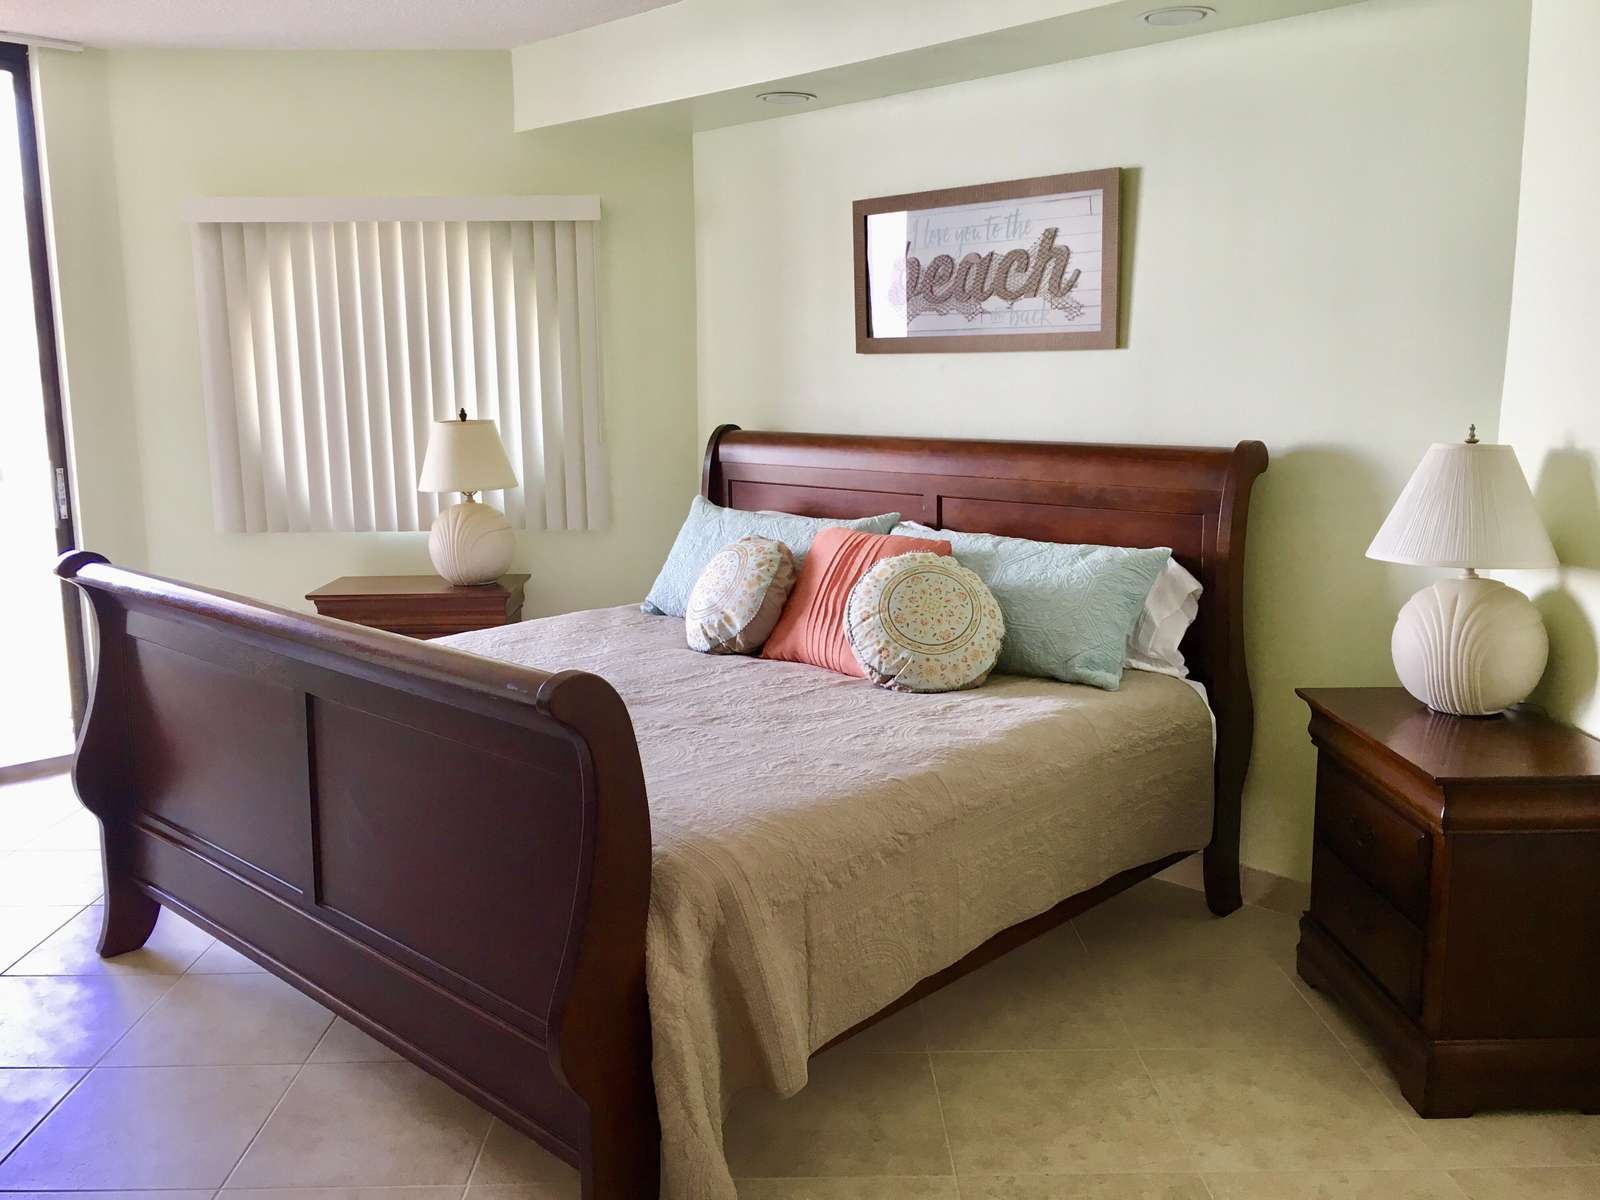 The master bedroom also features an en-suite bathroom, balcony access with a view of the Gulf, and a large closet.